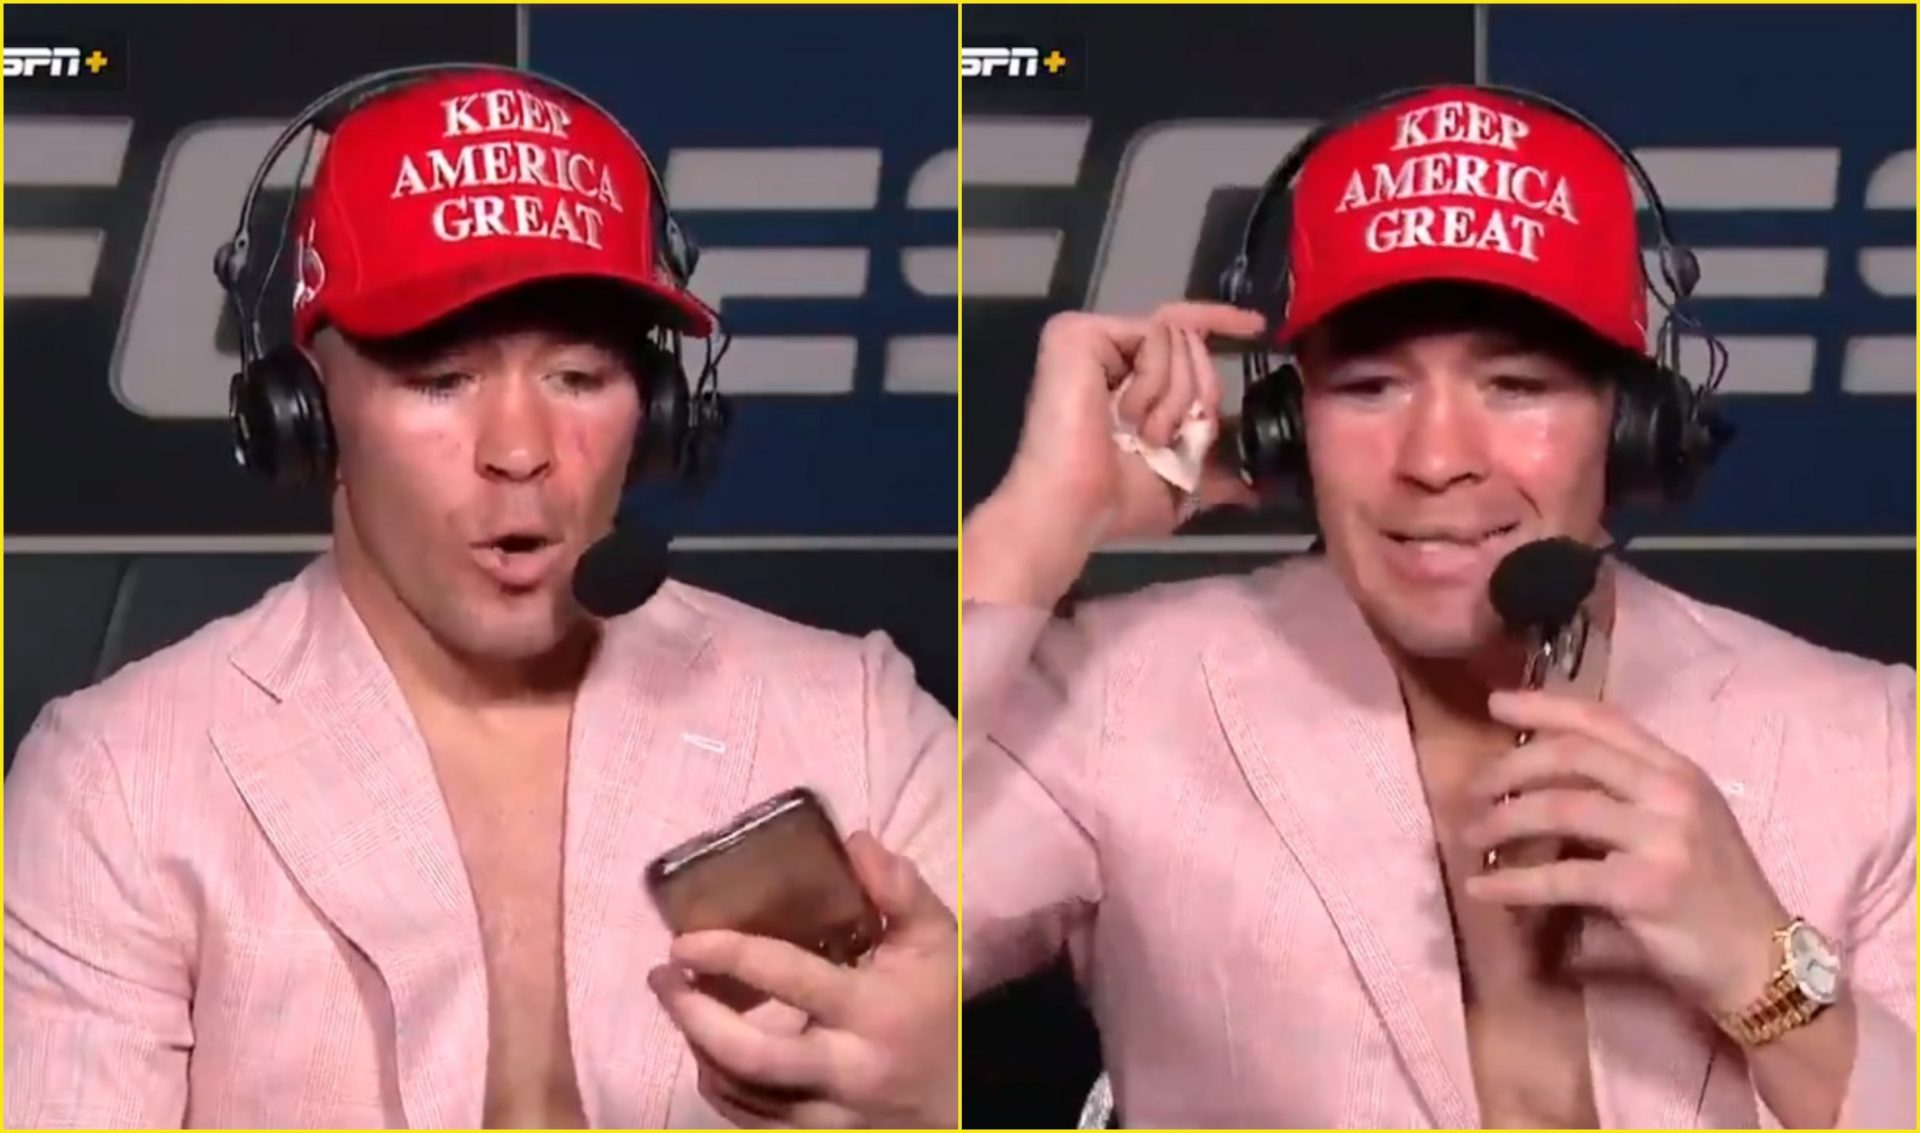 Watch: Colby Covington gets a call from President Donald Trump during an interview - Covington